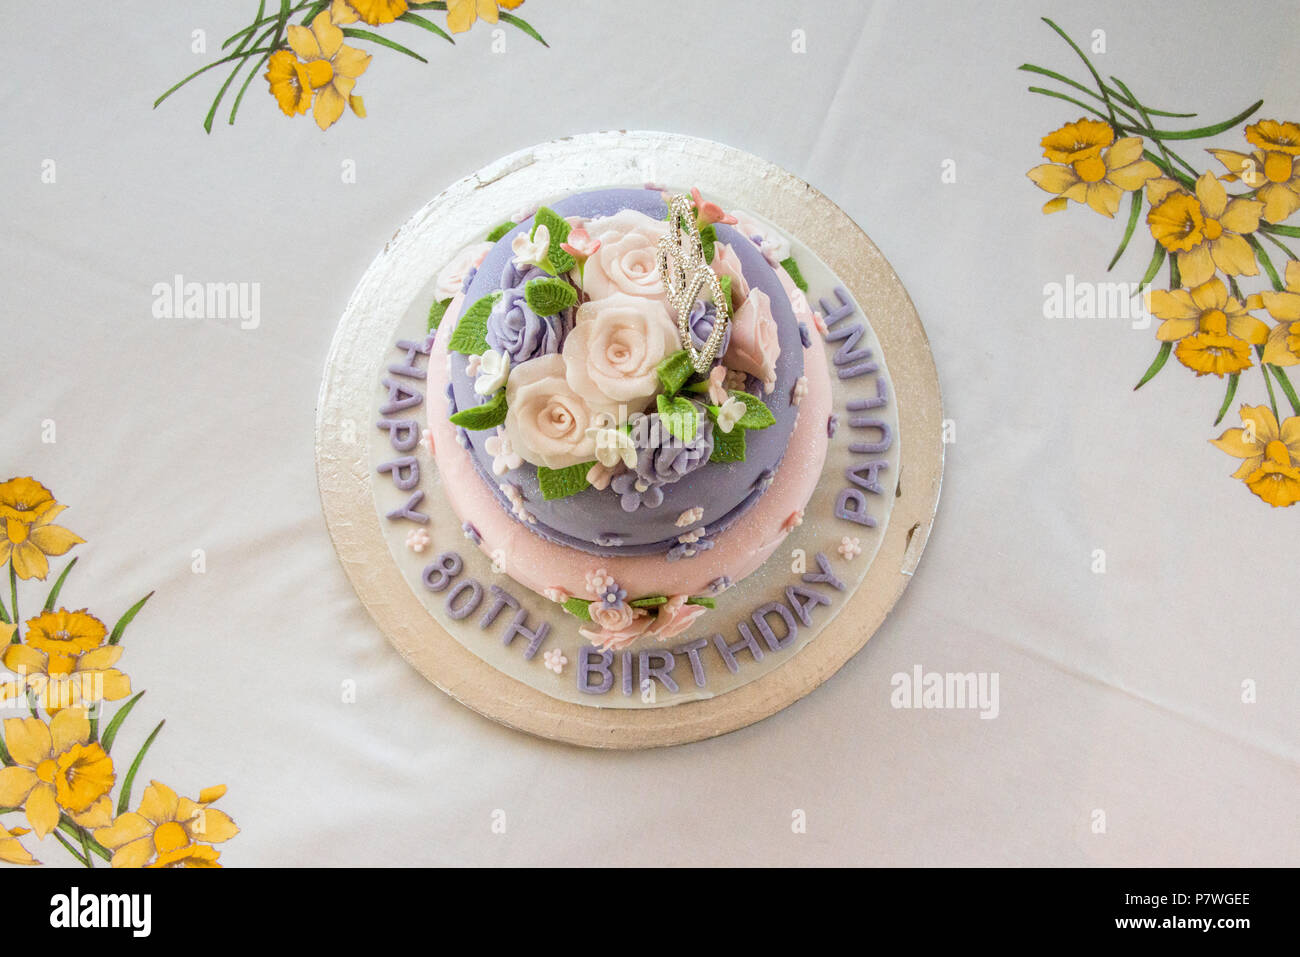 Two tier decorated 80th birthday cake - Stock Image